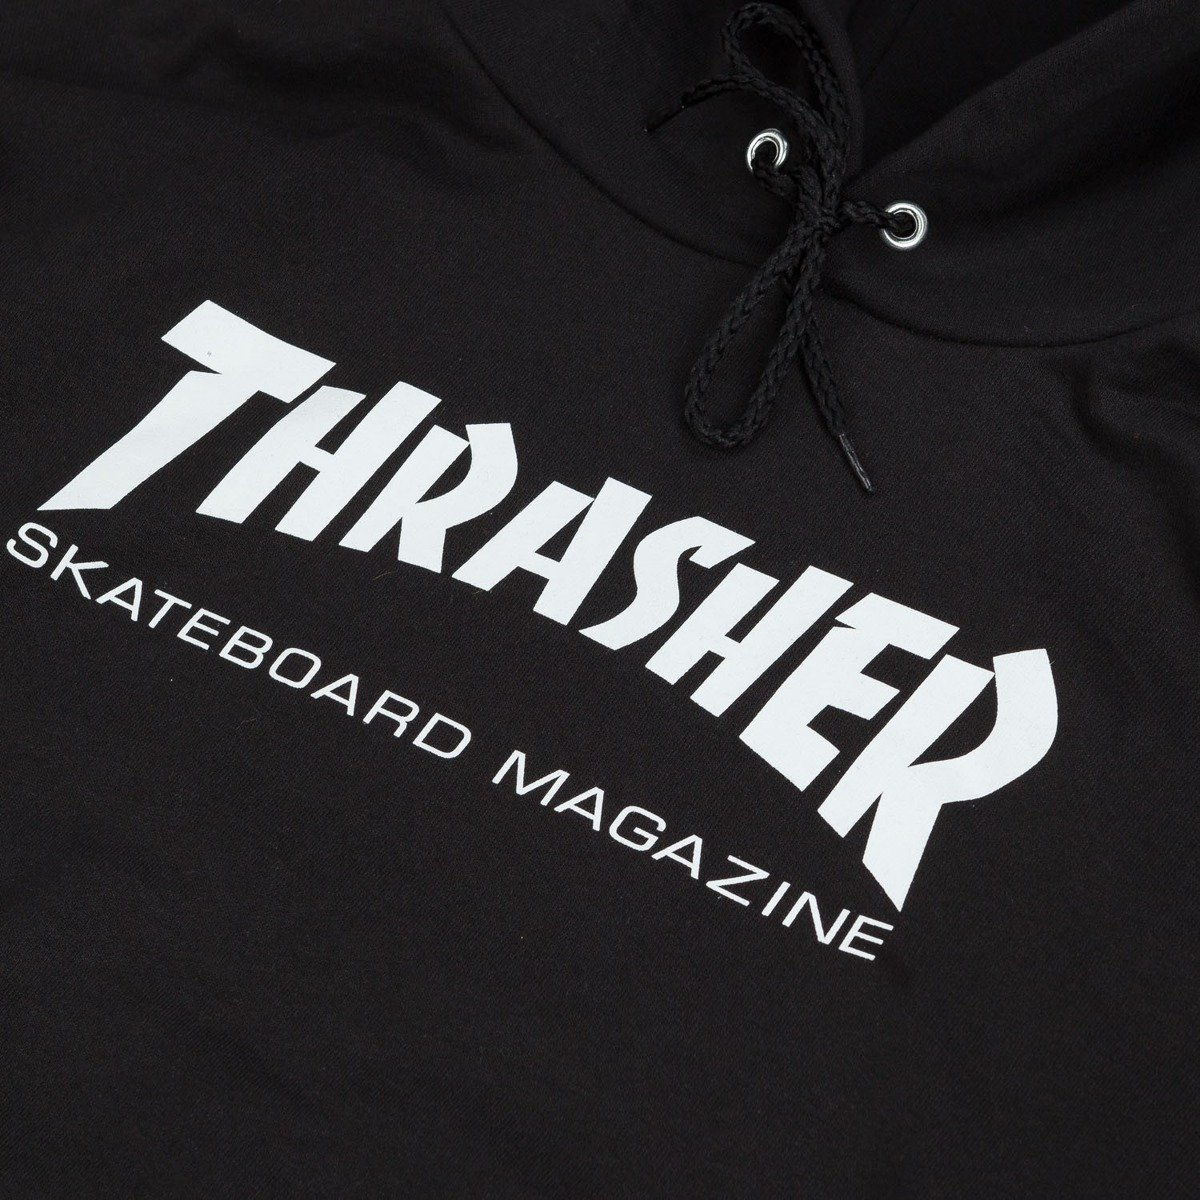 Thrasher logo black - photo#19